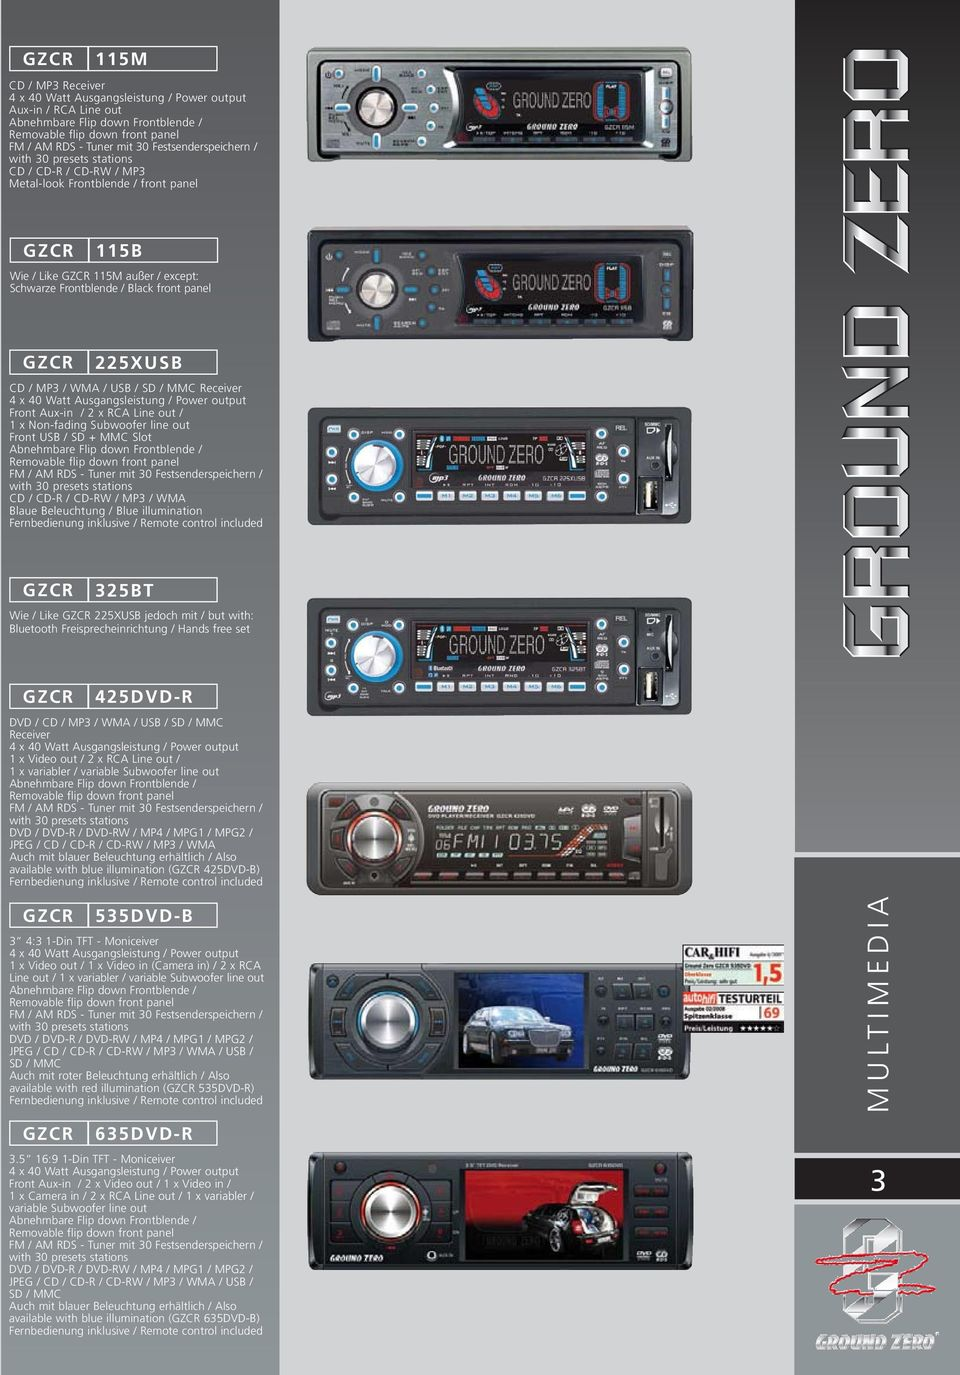 GZCR 225XUSB CD / MP3 / WMA / USB / SD / MMC Receiver 4 x 40 Watt Ausgangsleistung / Power output Front Aux-in / 2 x RCA Line out / 1 x Non-fading Subwoofer line out Front USB / SD + MMC Slot